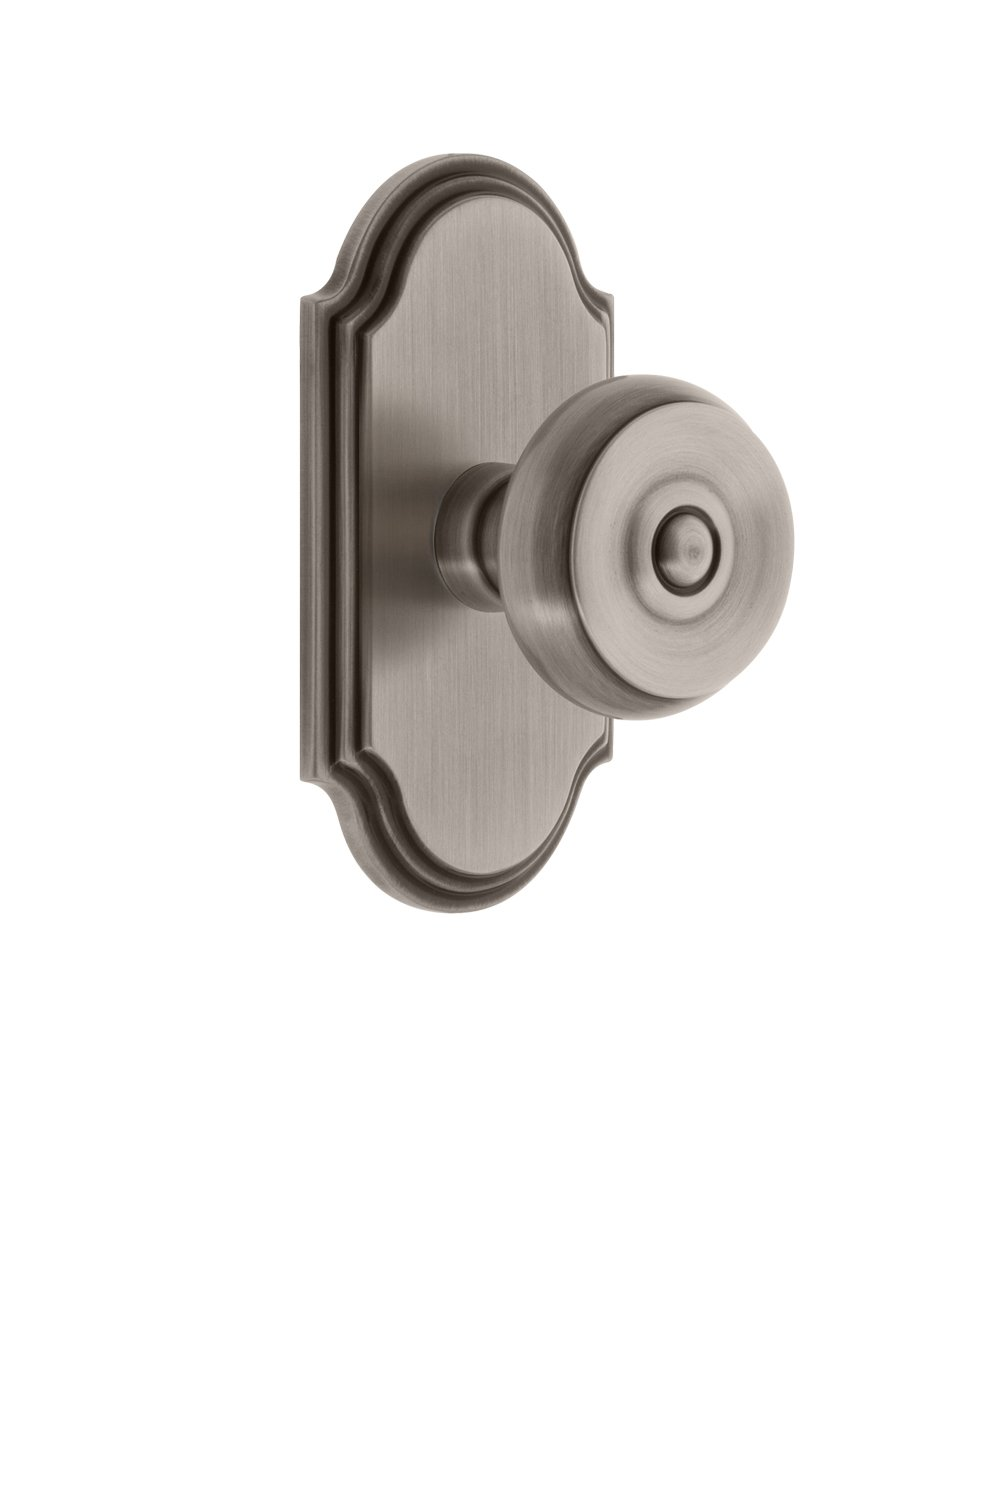 Grandeur 811535 Arc Plate Double Dummy with Bouton Knob in Satin Nickel